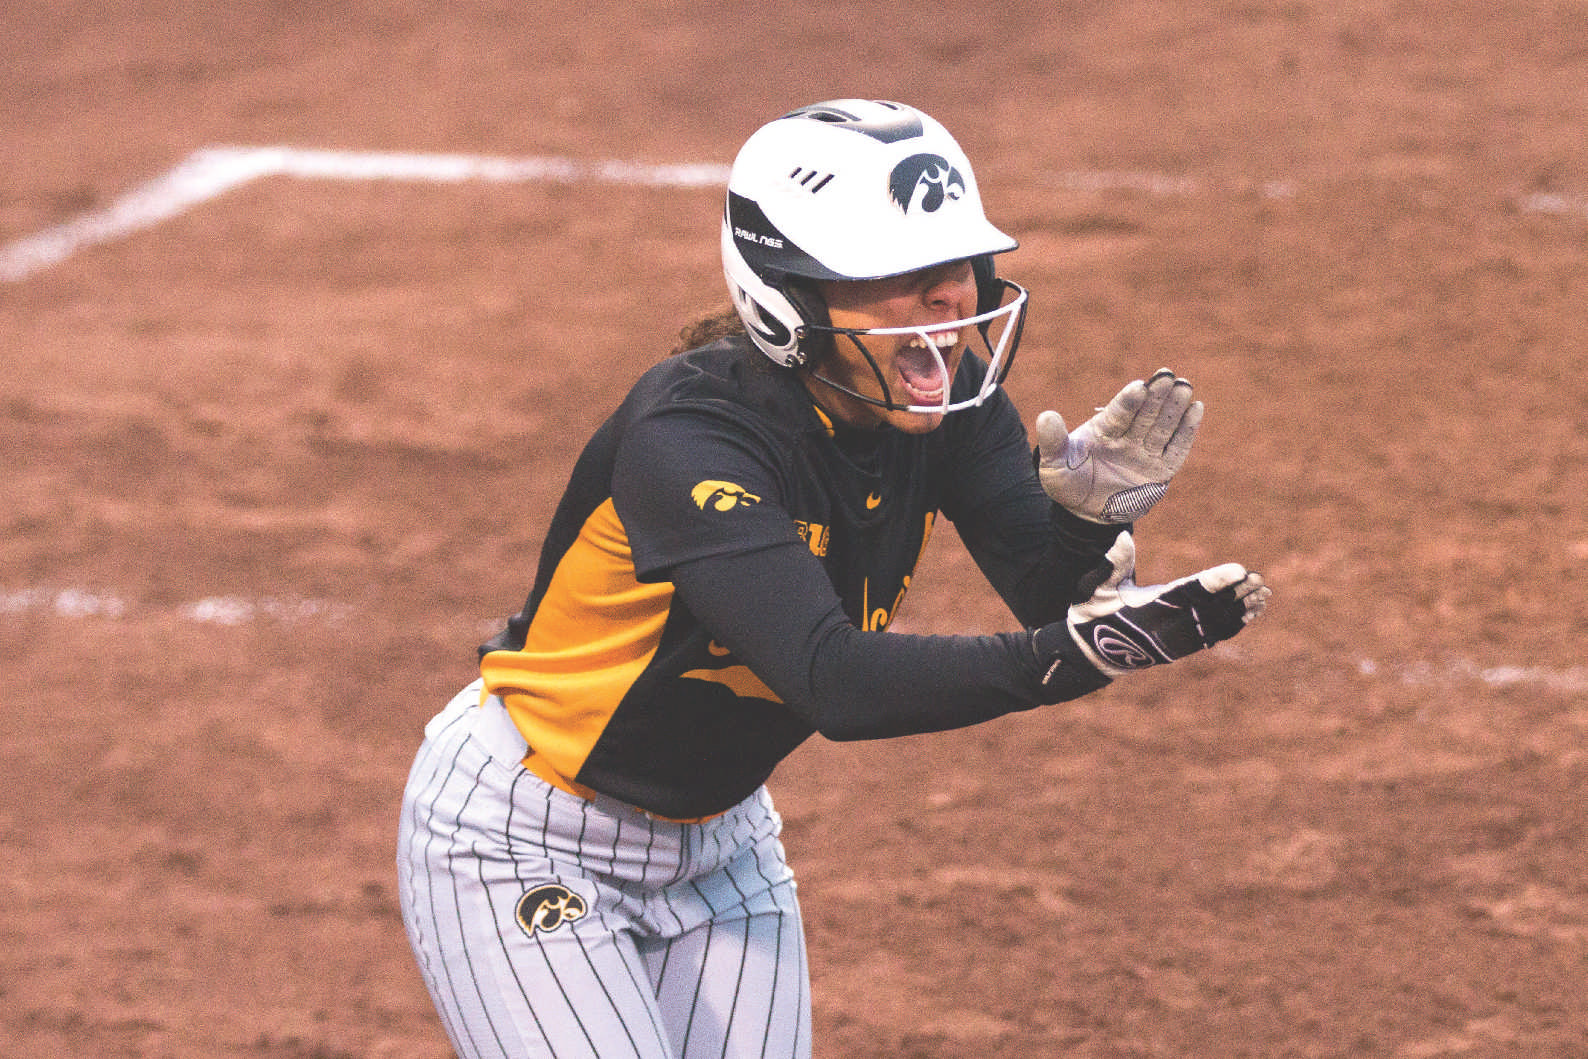 Softball travels to Maryland with the means to win